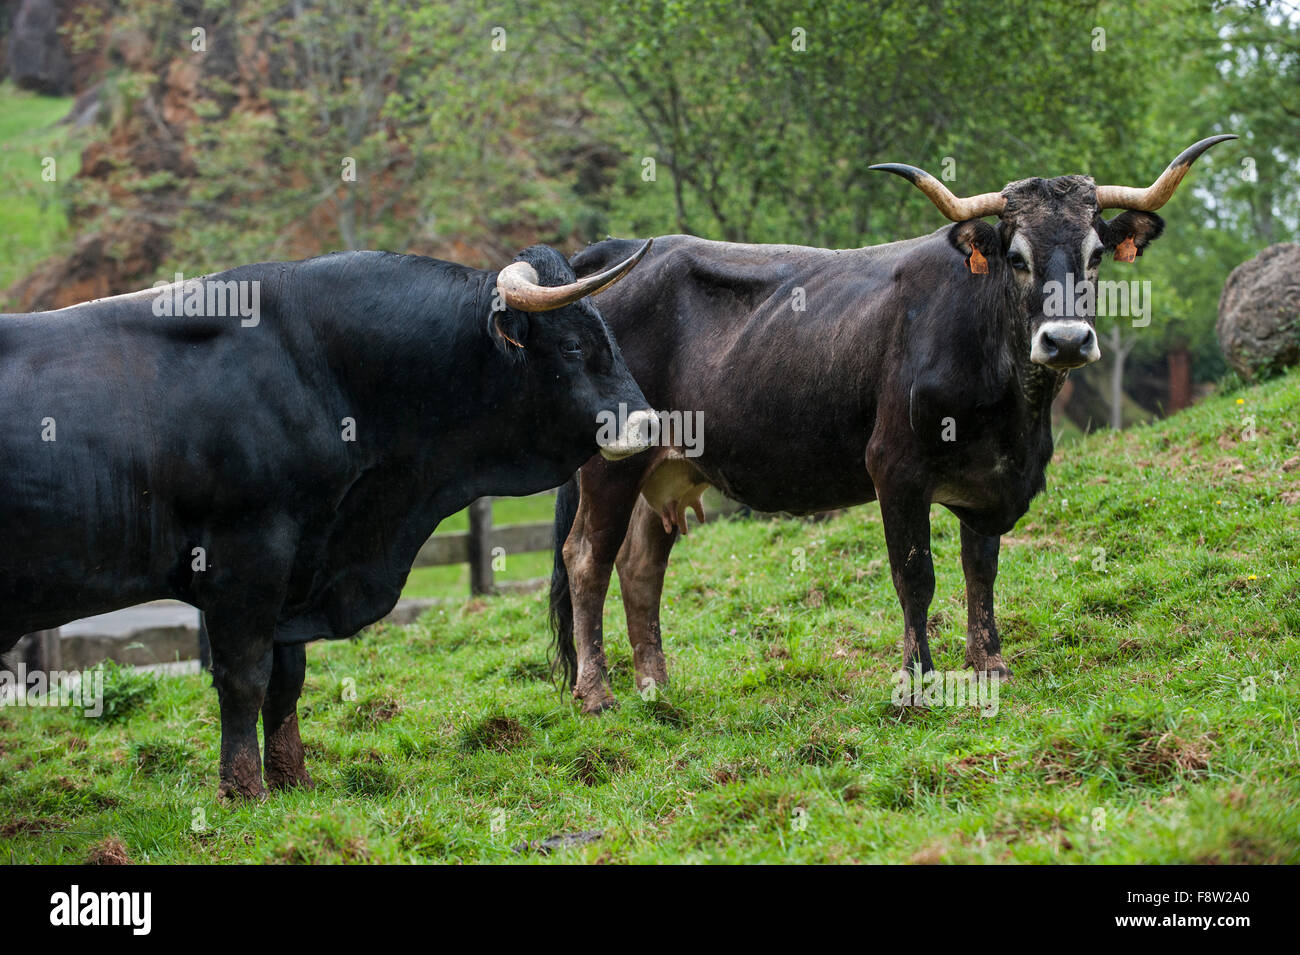 Tudanca bull and cow, primitive breed of cattle from Cantabria, Spain - Stock Image